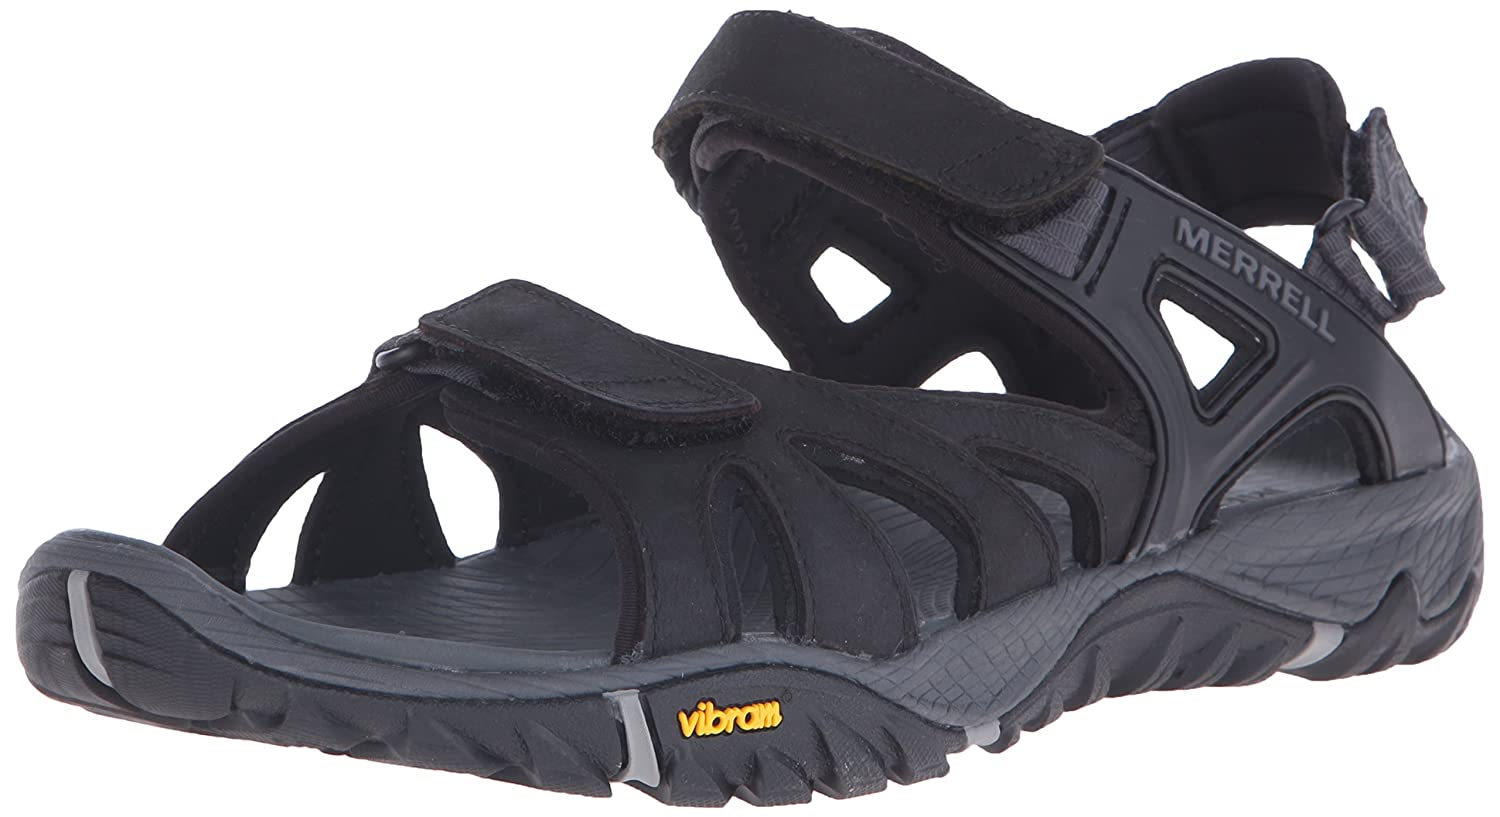 edf87e882809 Merrell Men s s All Out All Out Blaze Sieve Convert Hiking Sandals   Amazon.co.uk  Shoes   Bags